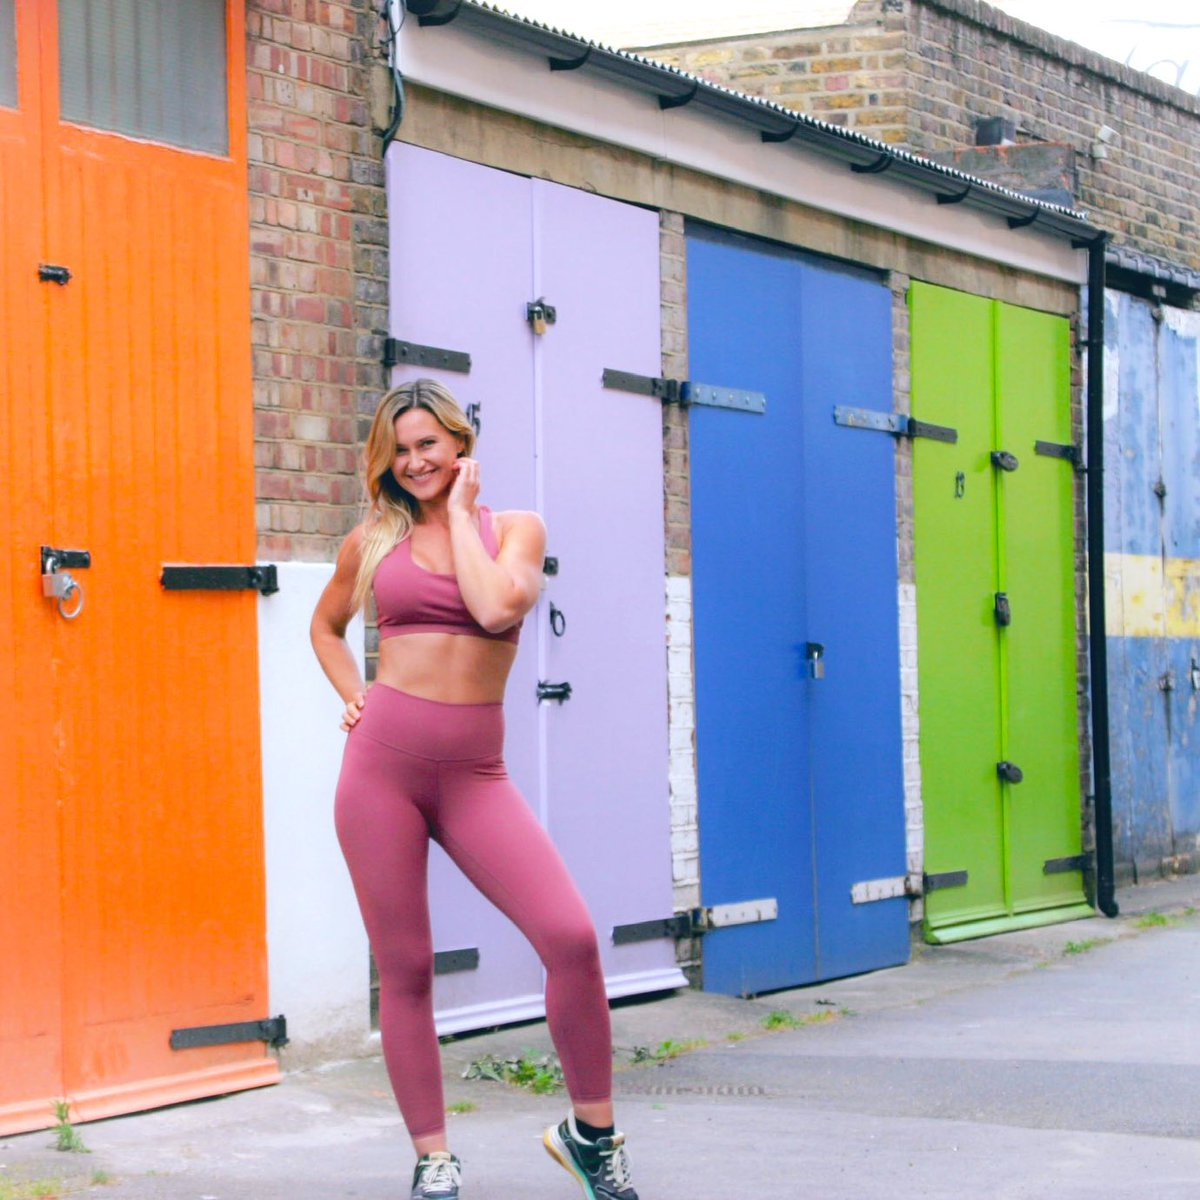 Hello June 🌼 and Hello Summer ☀️Time to brighten up your fitness wardrobe. Leggings, sports bras & tanks..Lots of vibrant happy colours to choose from! Go ahead, treat yourself #HelloJune #HelloSummer #sunshine #happy #FitnessMotivation #shoponline